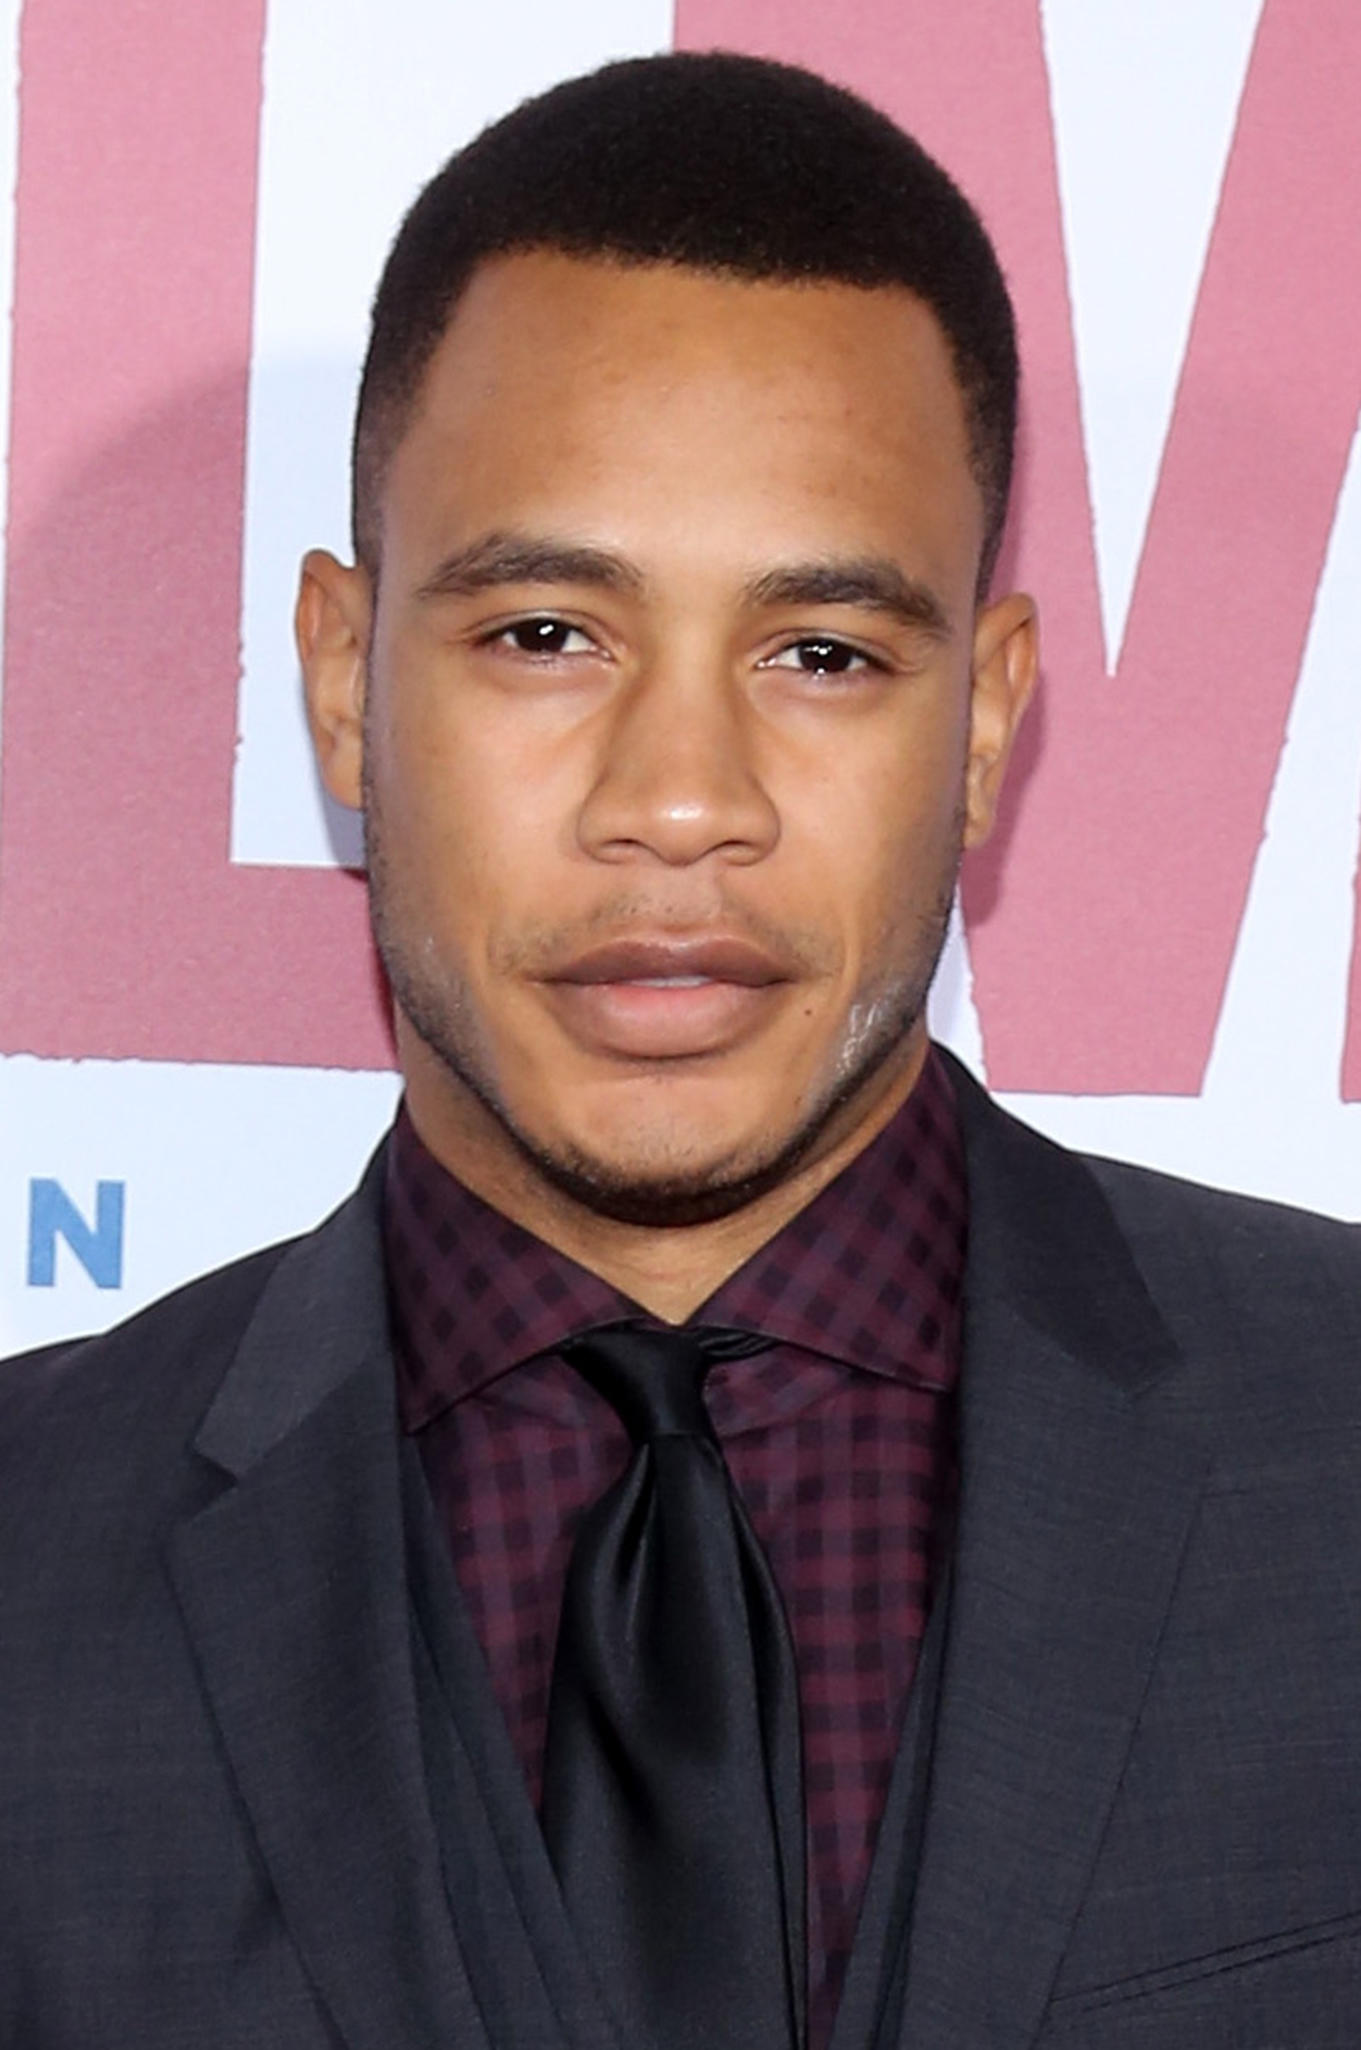 Trai Byers at the NY premiere for